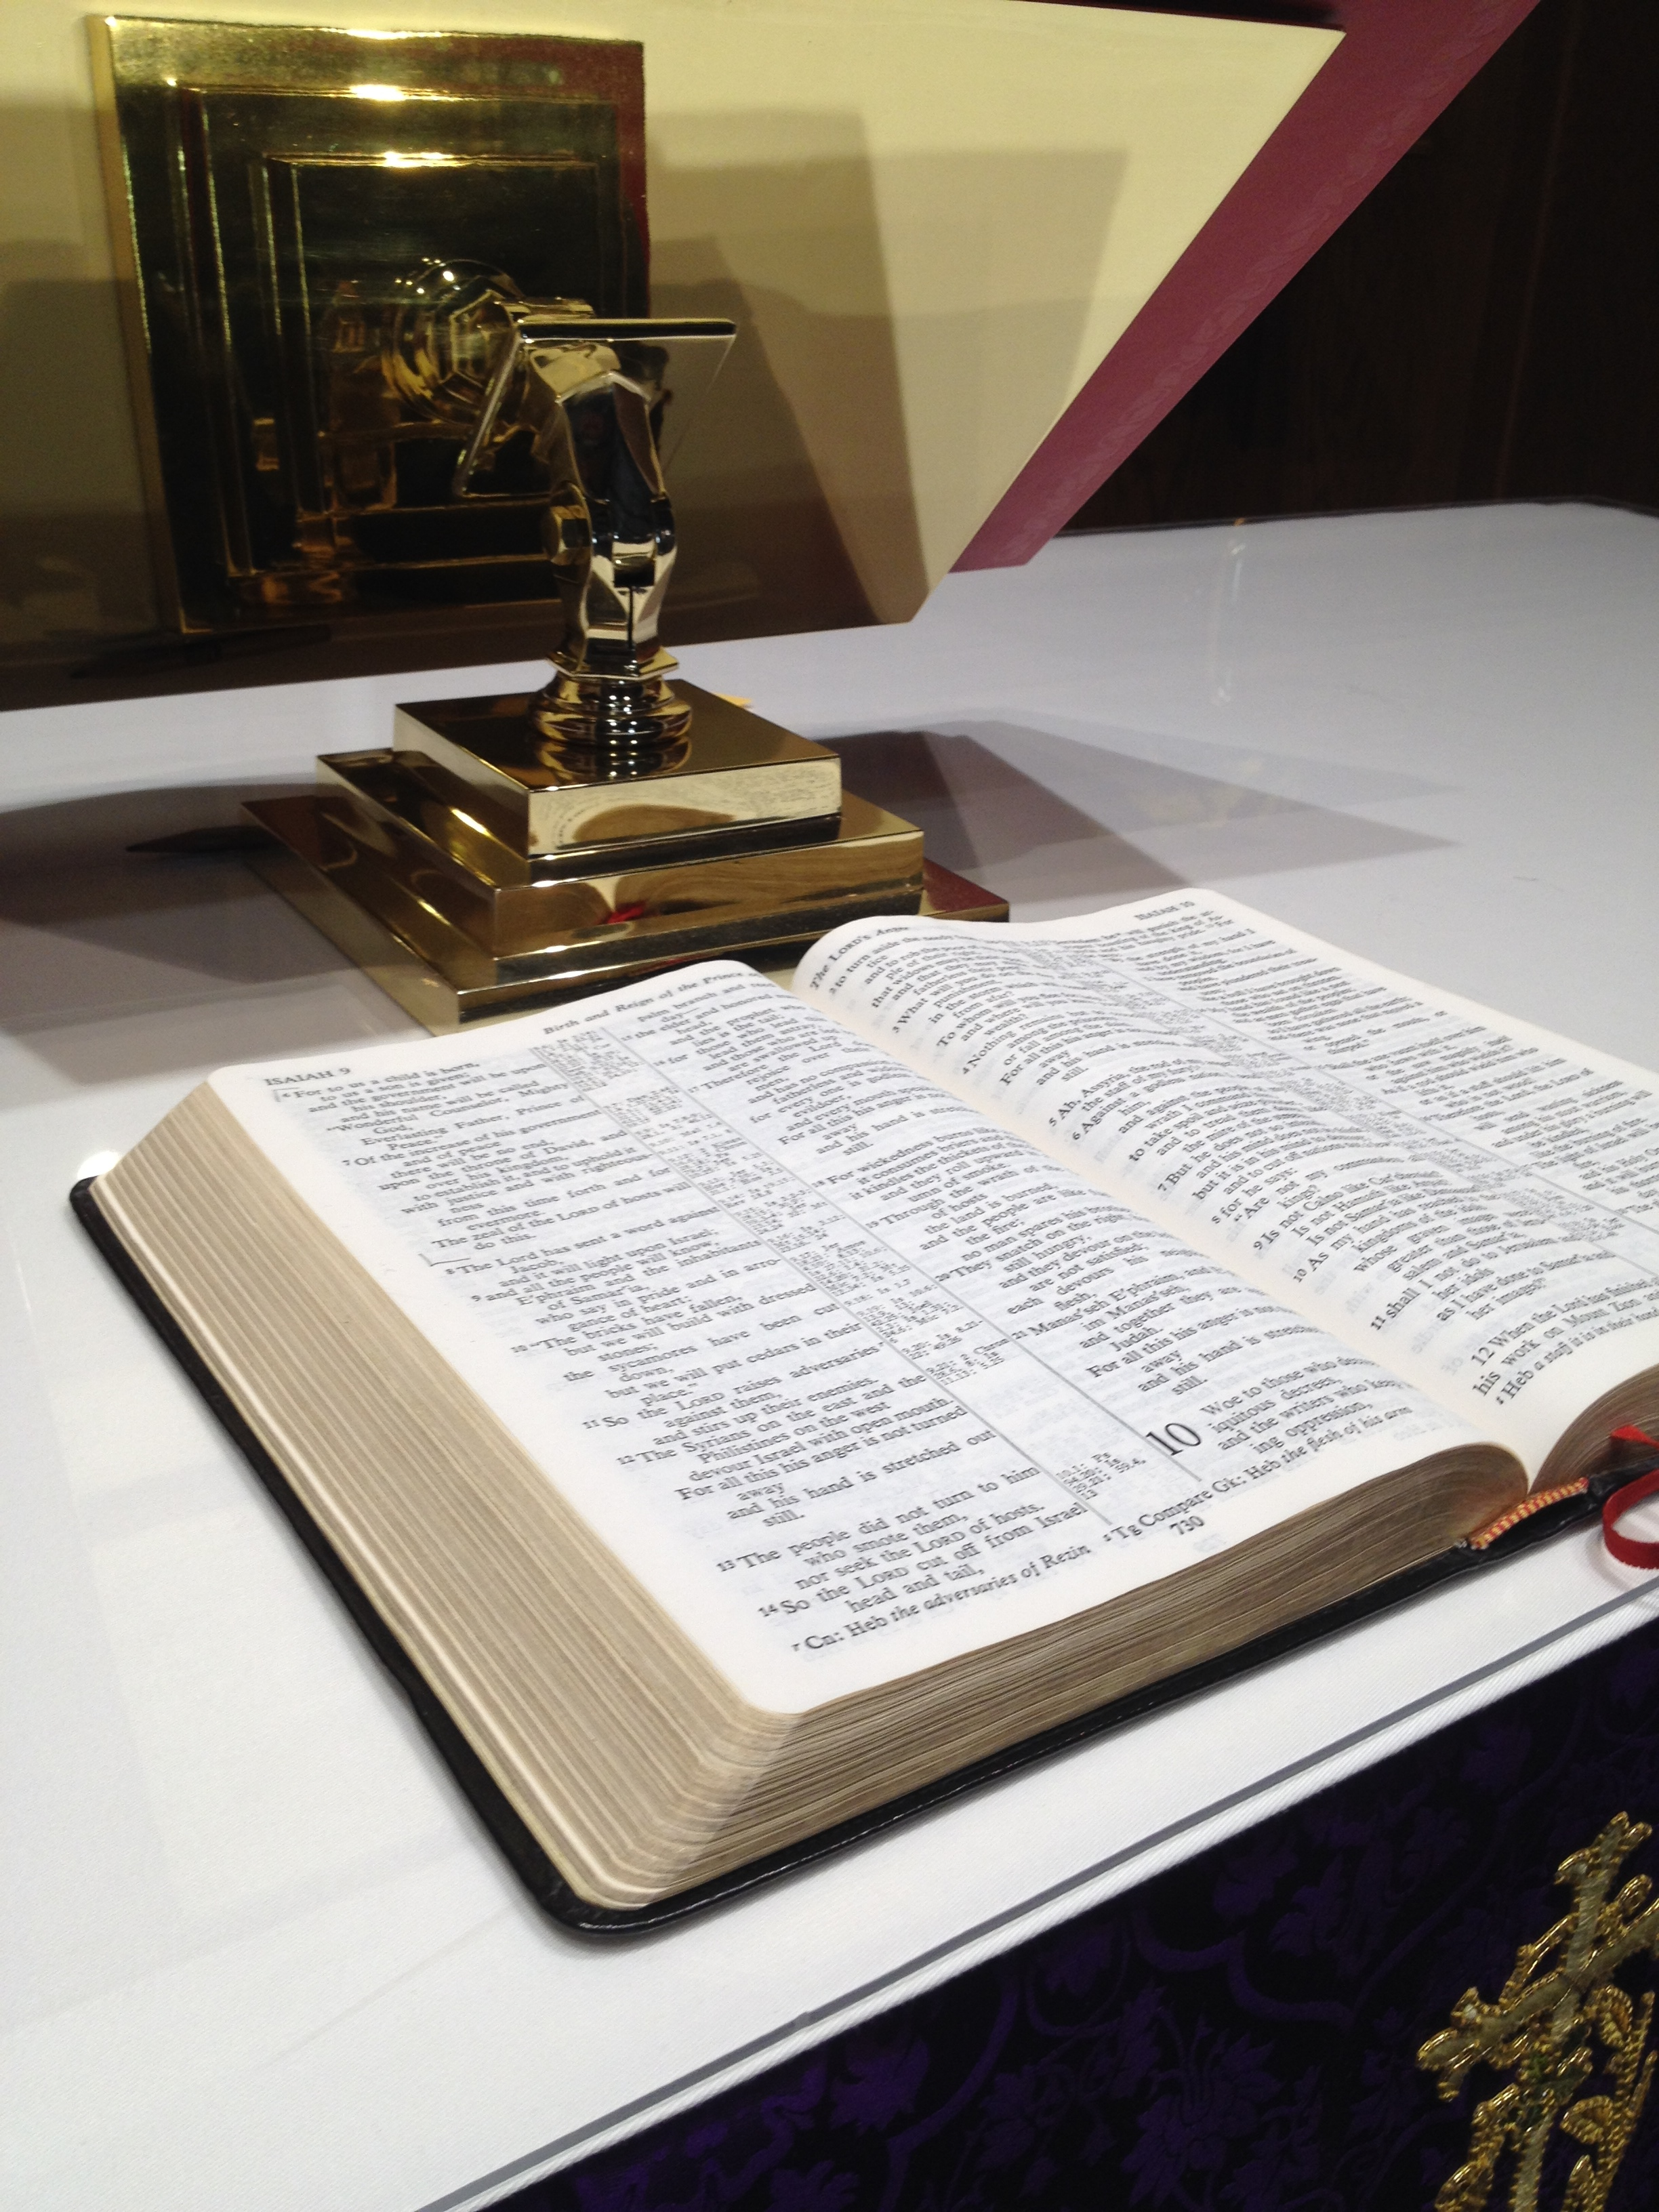 God's word comes to us through scripture and proclamation. St. John's follows a Narrative Lectionary for regular readings in worship and uses the New Revised Standard Version as the preferred bible translation for worship.